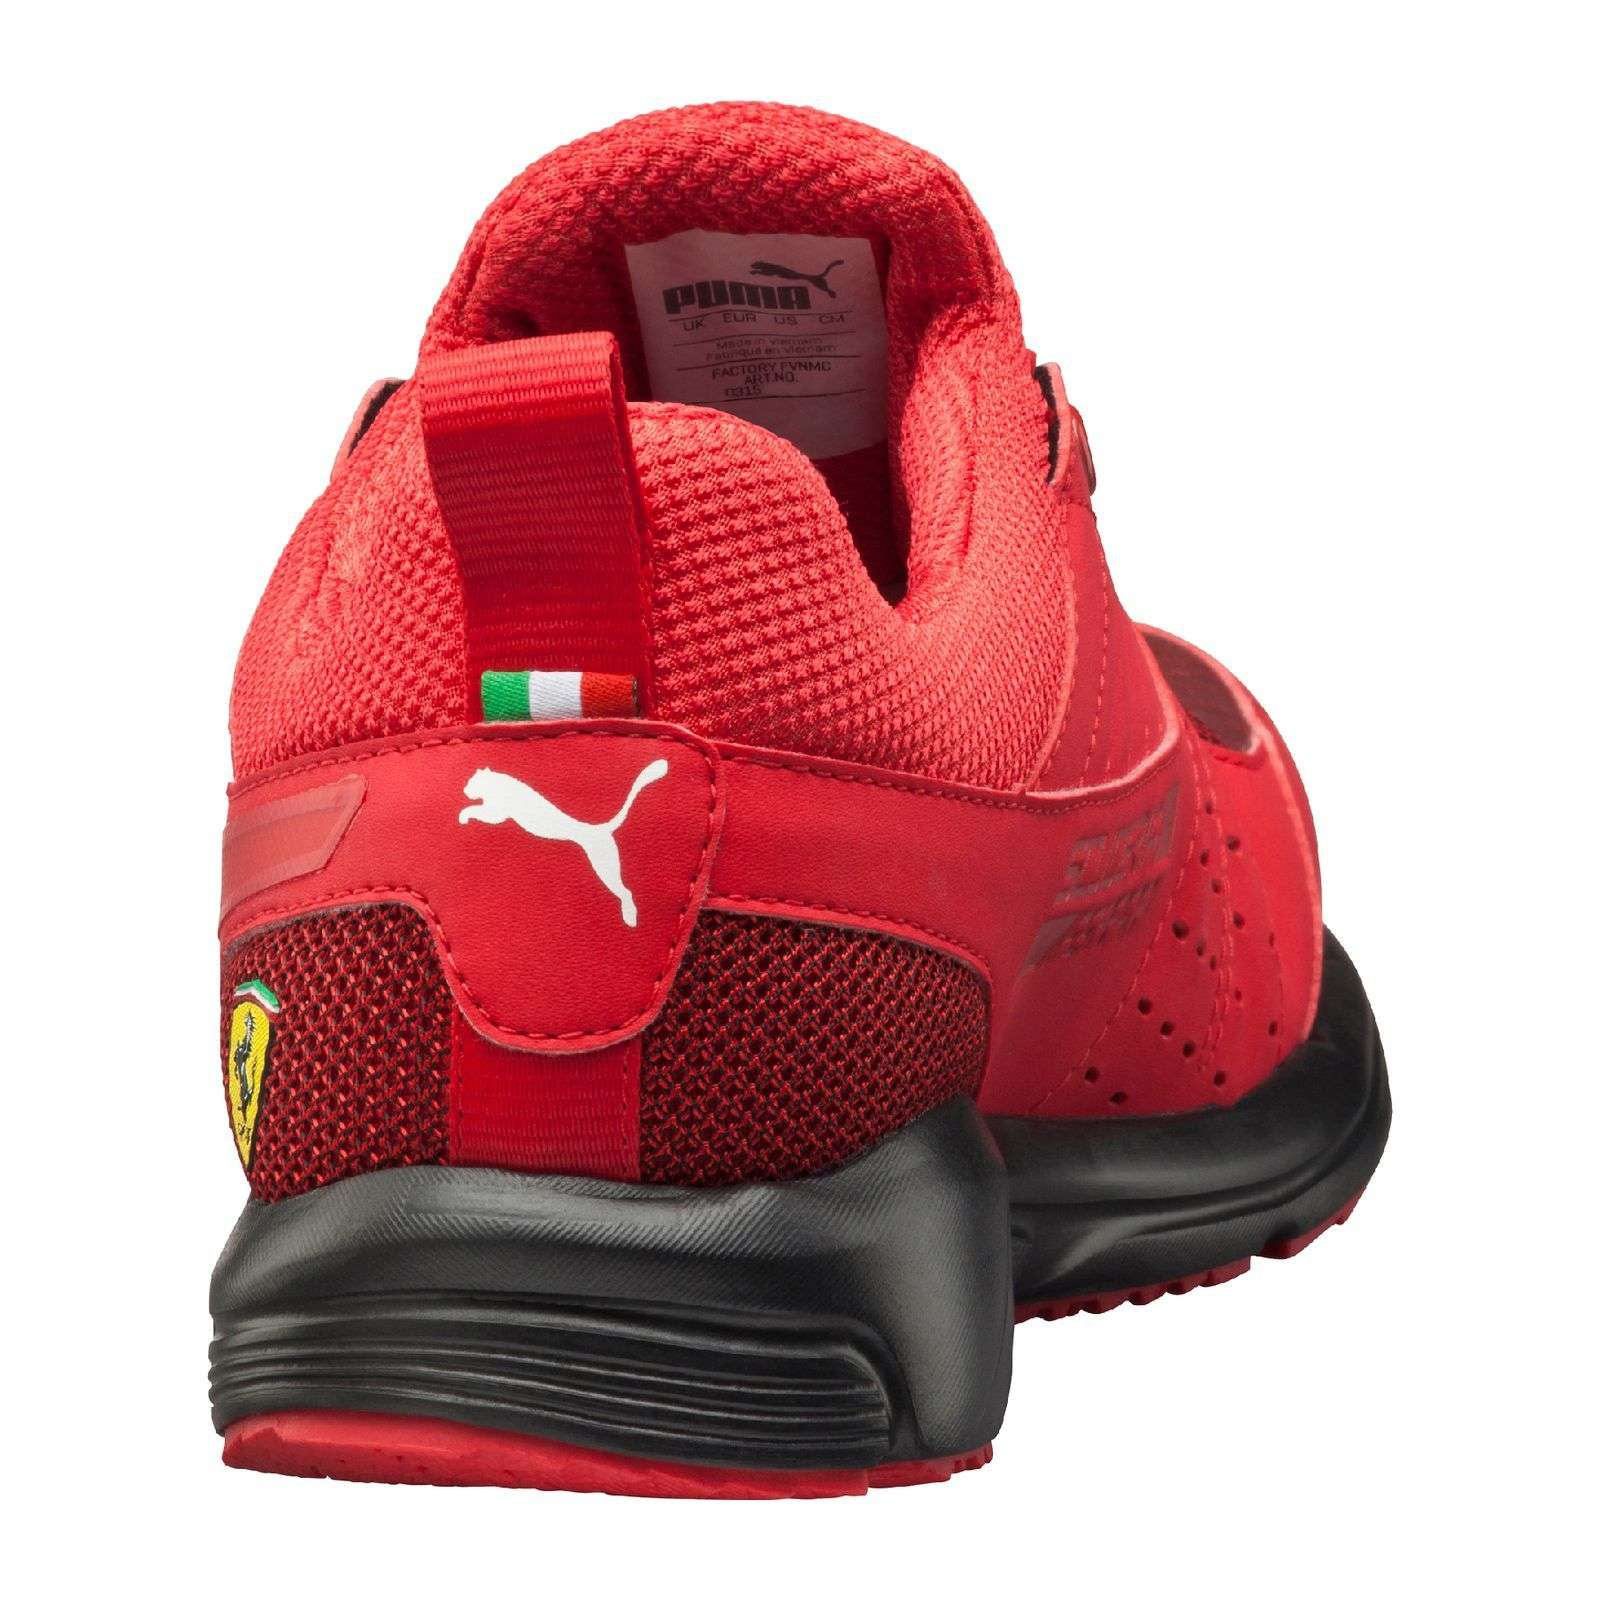 b9575770ba7f BrandAlley 5 1 Pitlane SF rouge Baskets Puma Mode twHA10Cqxx